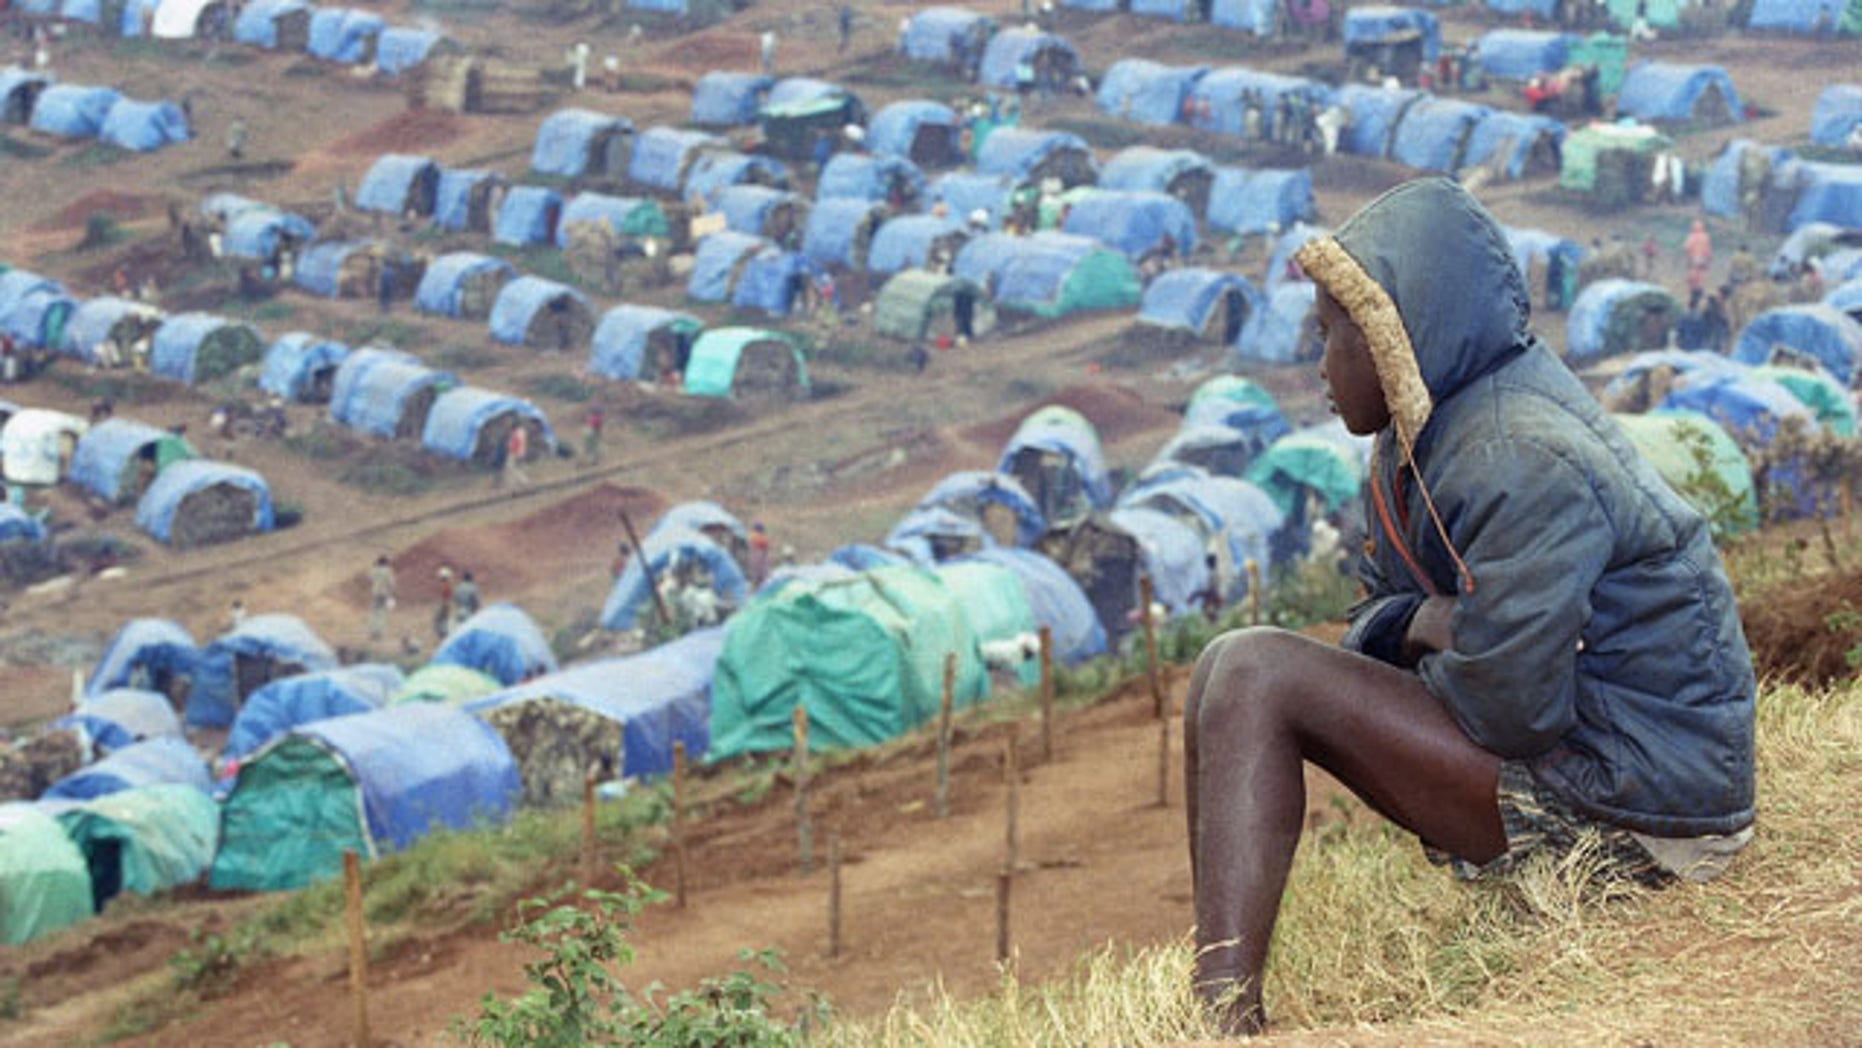 FILE - In this Aug. 25, 1994 file photo a young Tutsi refugee gazes upon the Tutsi camp of Nyarushishi, Rwanda, 6 miles southeast of Cyangugu. Two decades after the Rwandan genocide, France is finally opening what critics called its blind eye to justice over the killings. (AP)